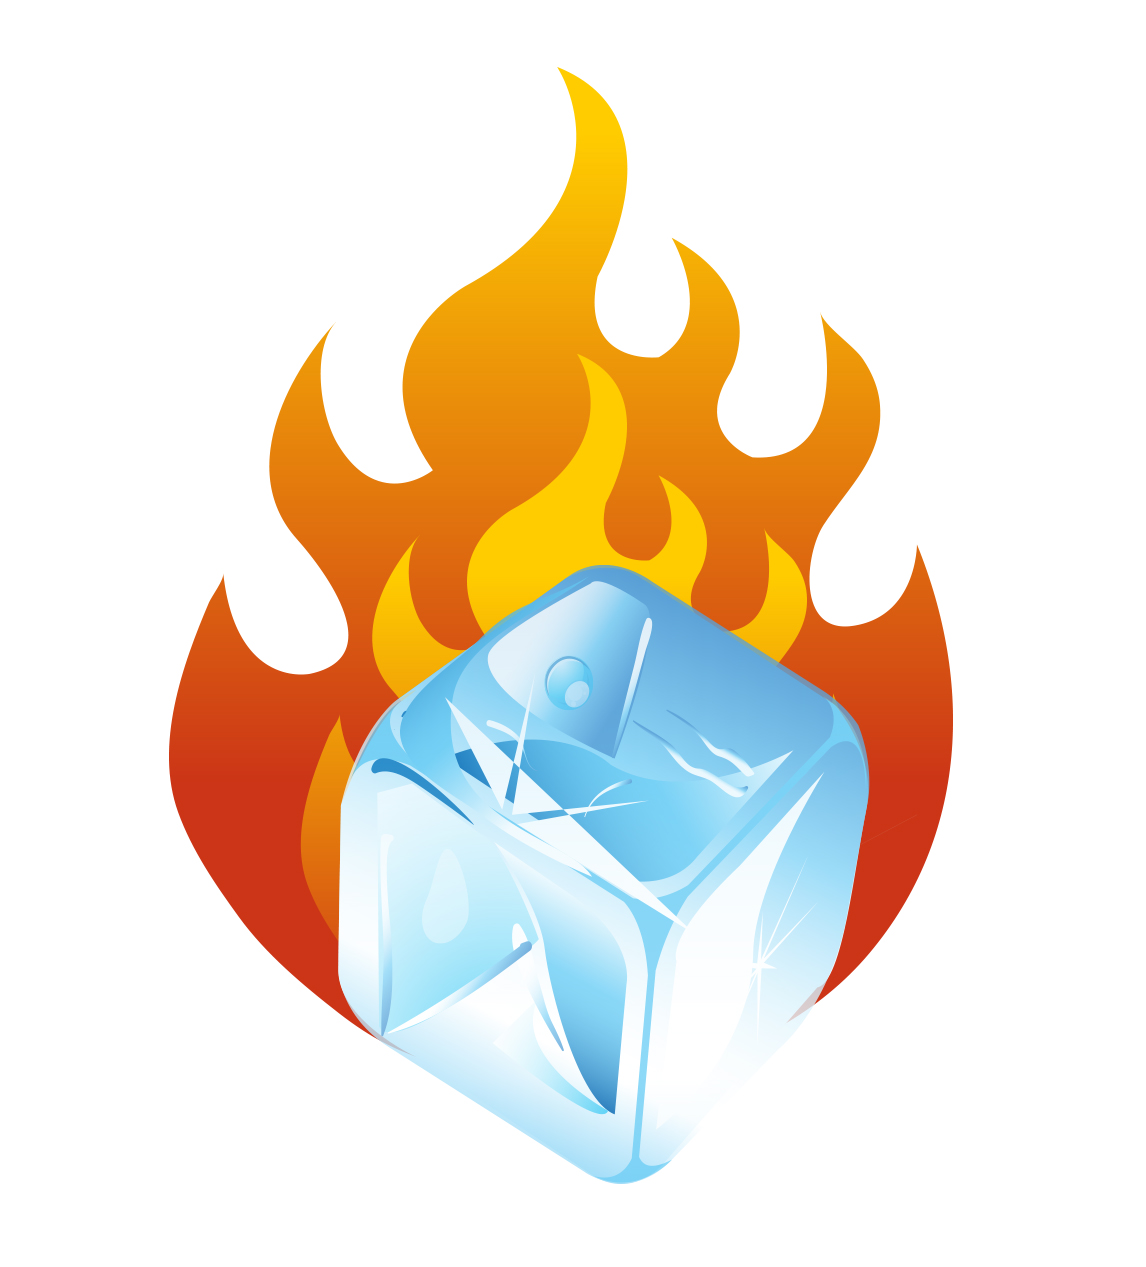 Fire And Ice clipart #1, Download drawings